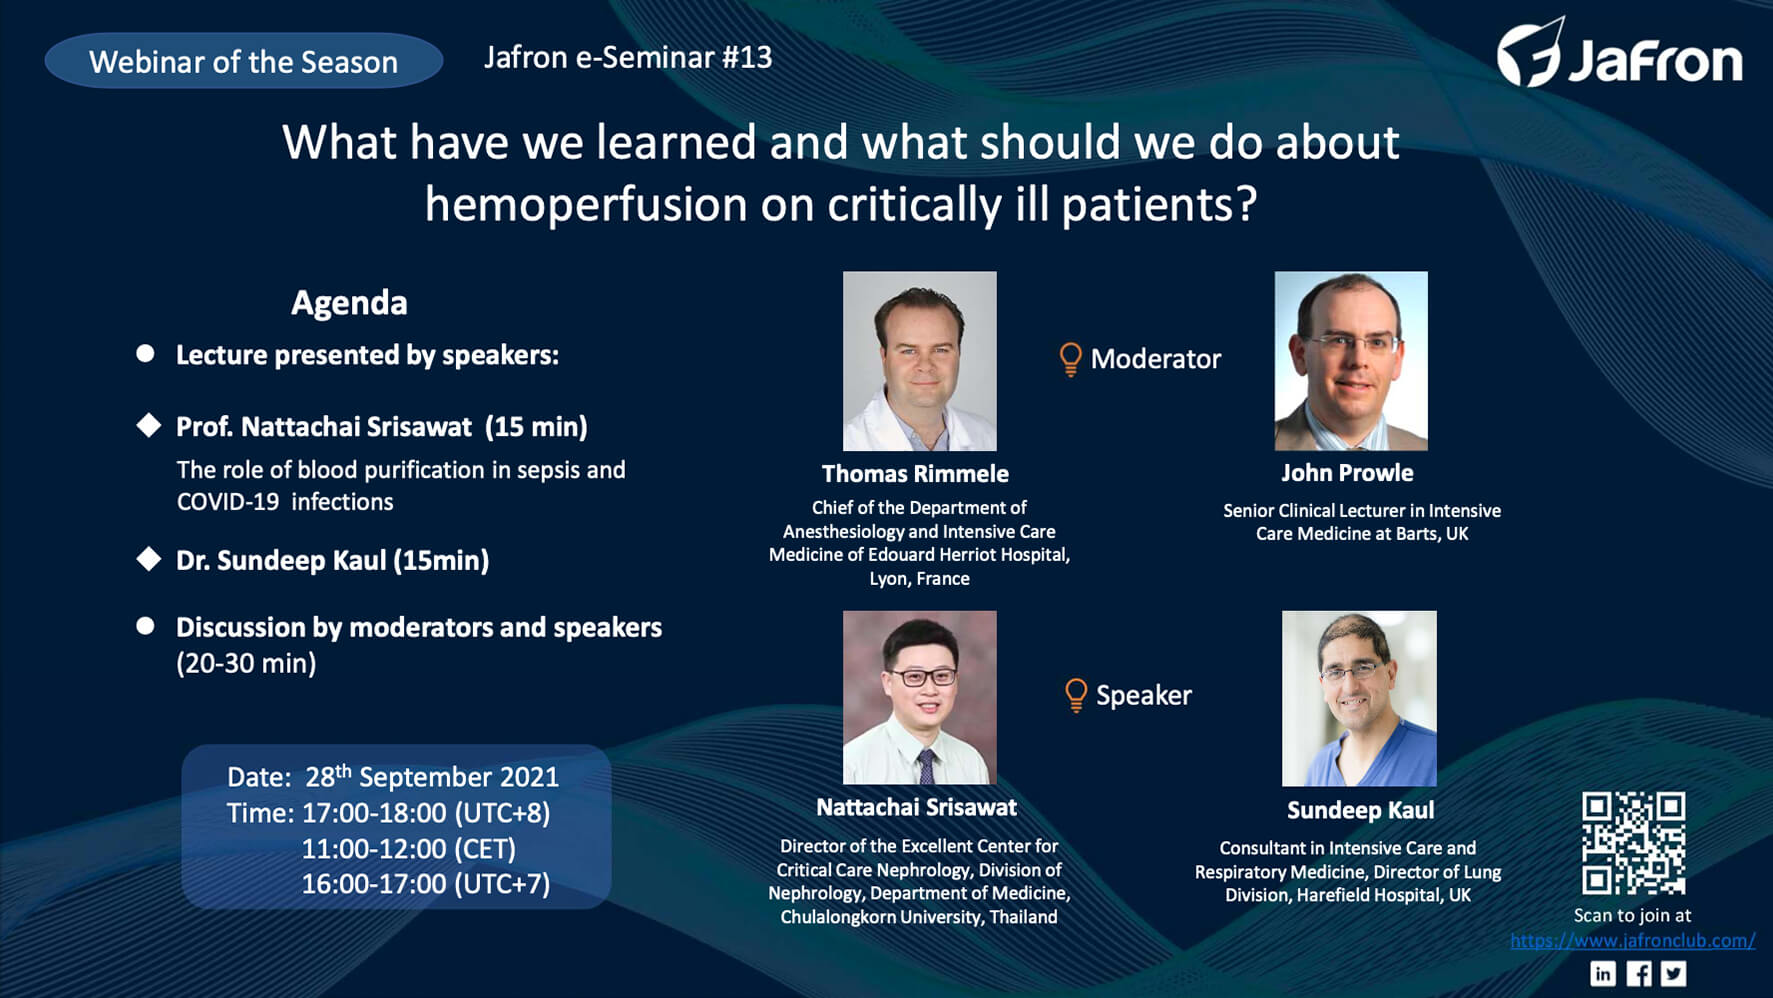 Анонс. E-Seminar №13 «What have we learned and what should we do about hemoperfusion on critically ill patients?»